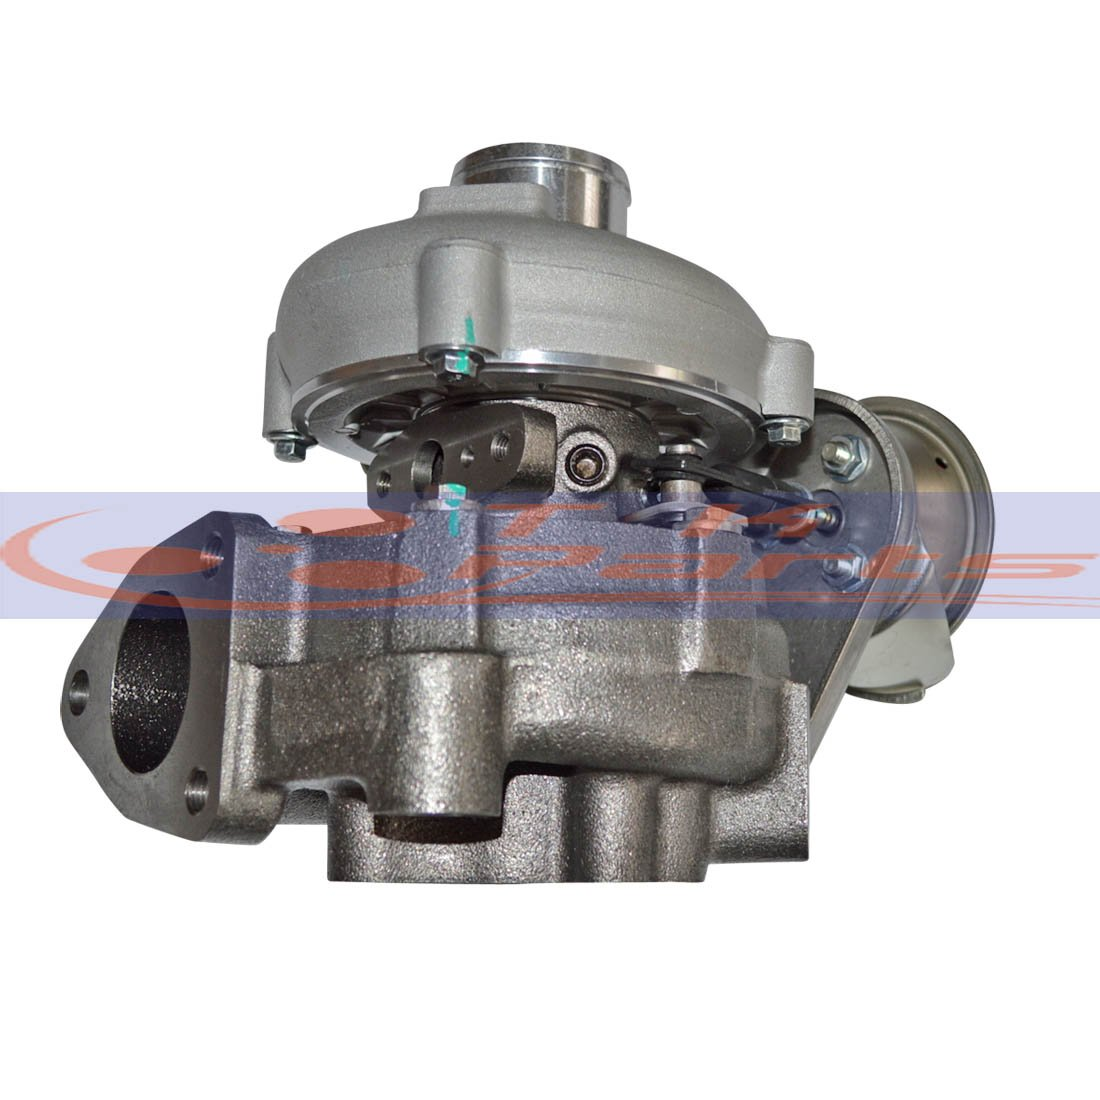 Amazon.com: TKParts New GT1749V 17201-27030 721164-0003 Turbo Charger For TOYOTA RAV4 D4D Avensis Picnic Previa 1CD-FTV 021Y 2.0L: Automotive